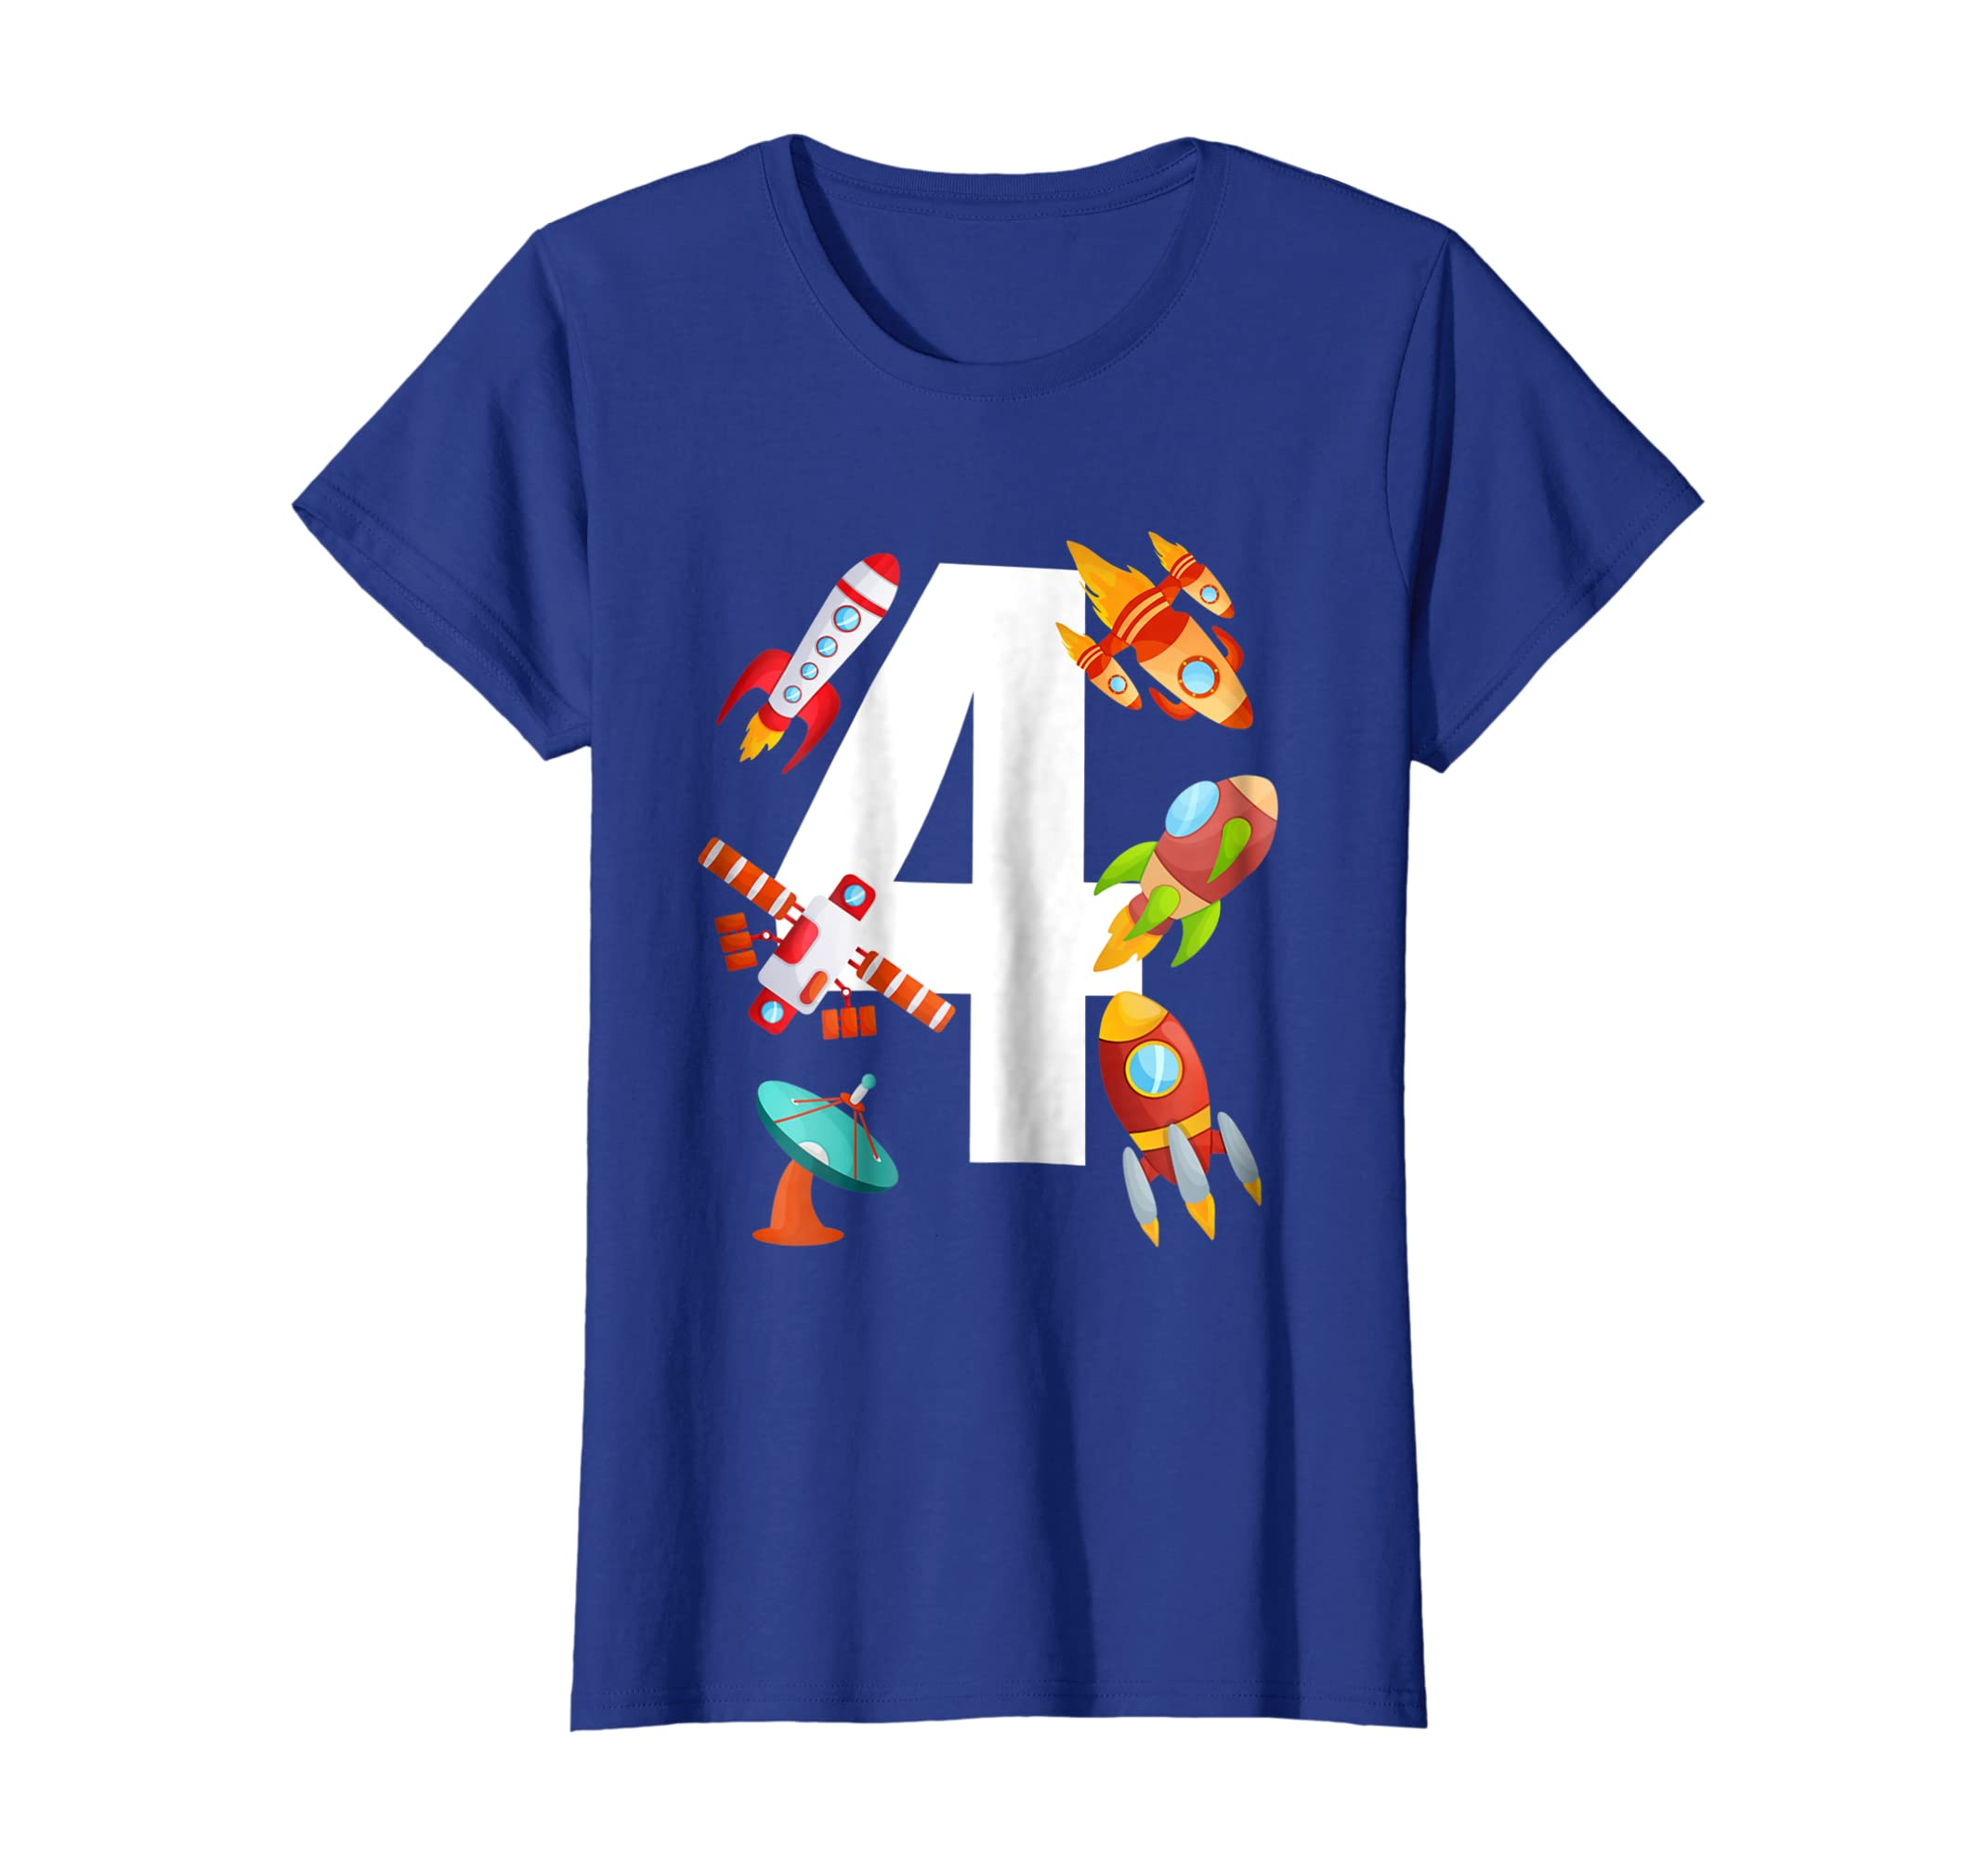 Amazon Kids Space Rockets 4th Birthday Party 4 Year Old Toddler Tee Clothing